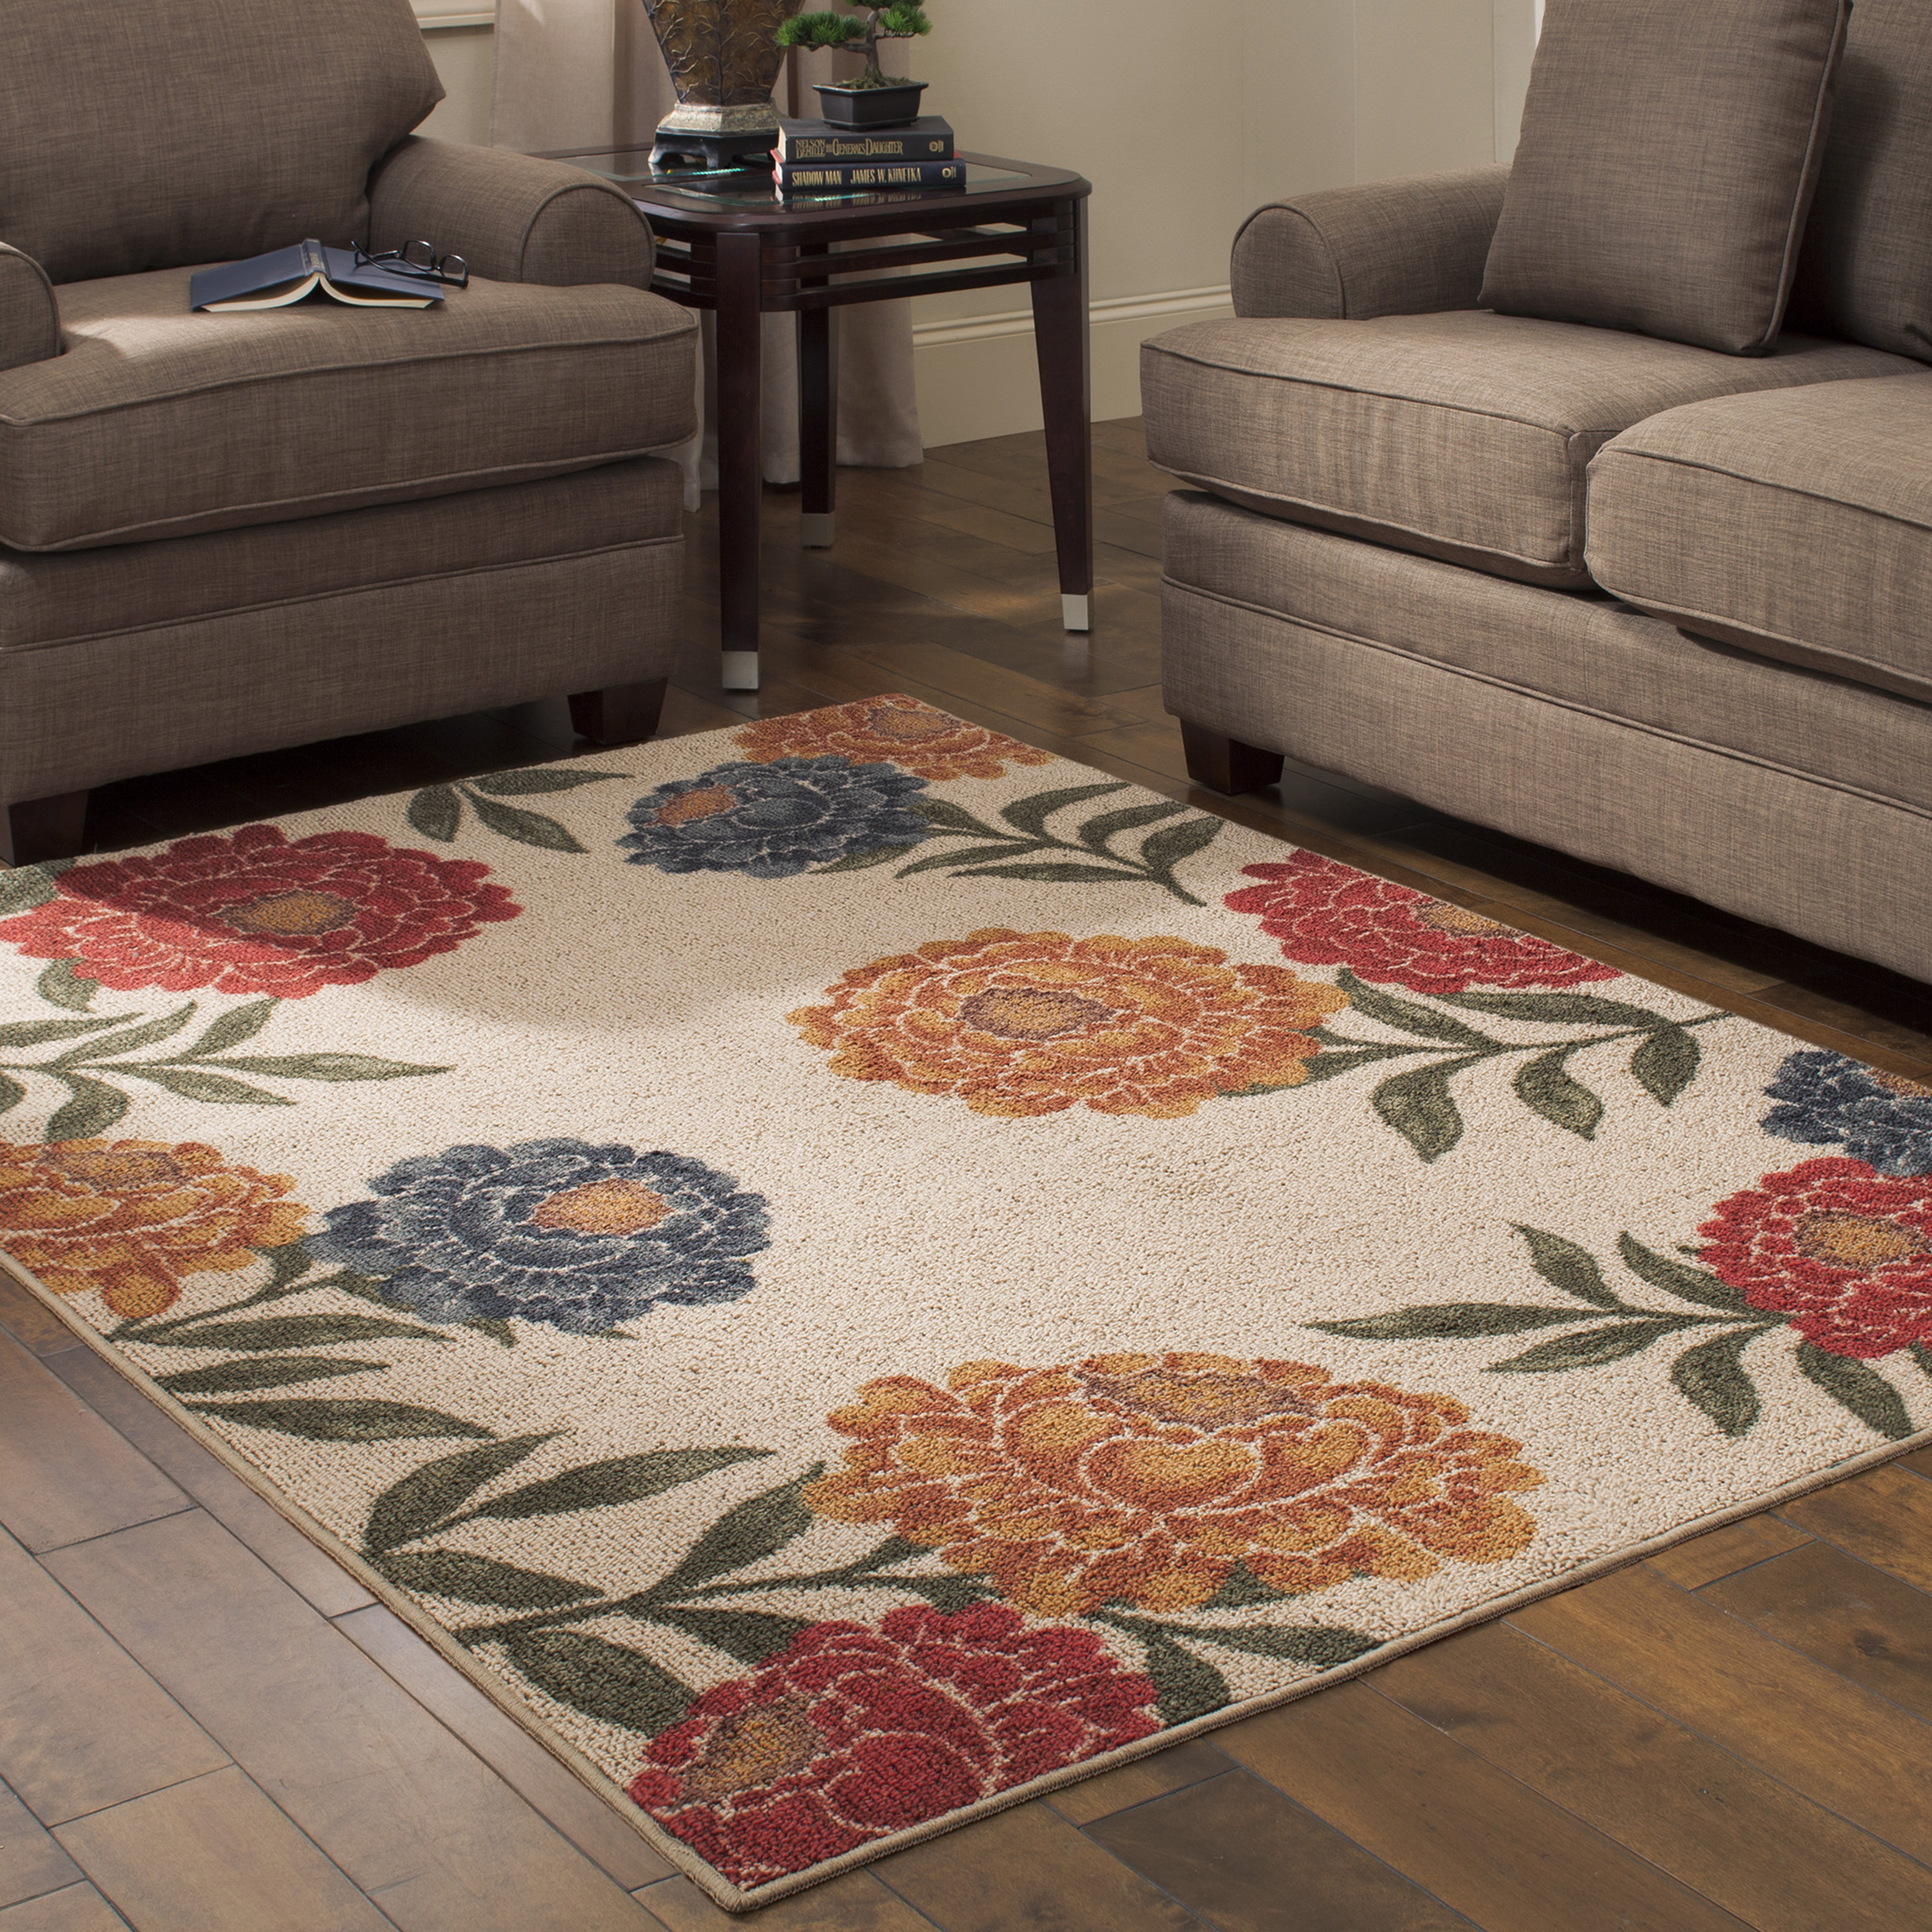 Click here to buy Better Homes and Gardens Floral Berber Area Rugs or Runner by Maples Industries.